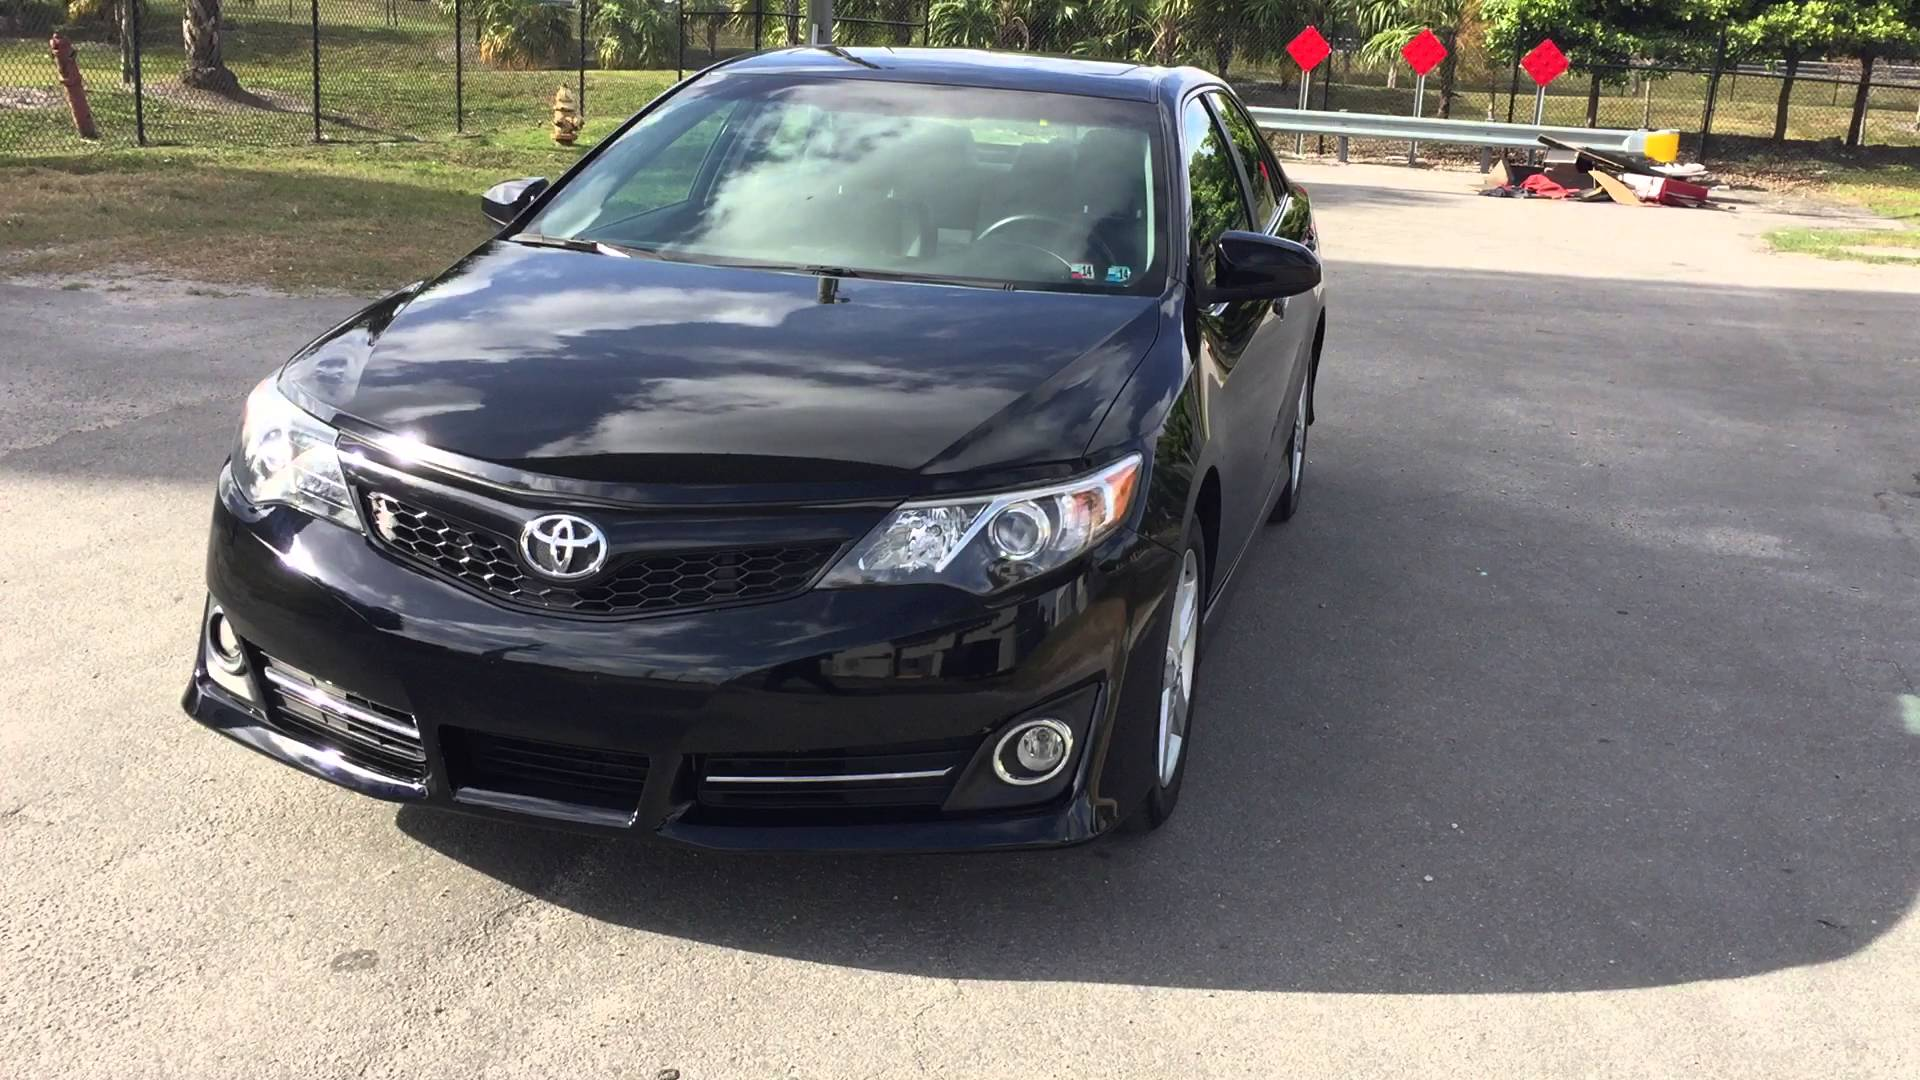 brand new toyota camry for sale in ghana yaris trd specs 2012  buy now